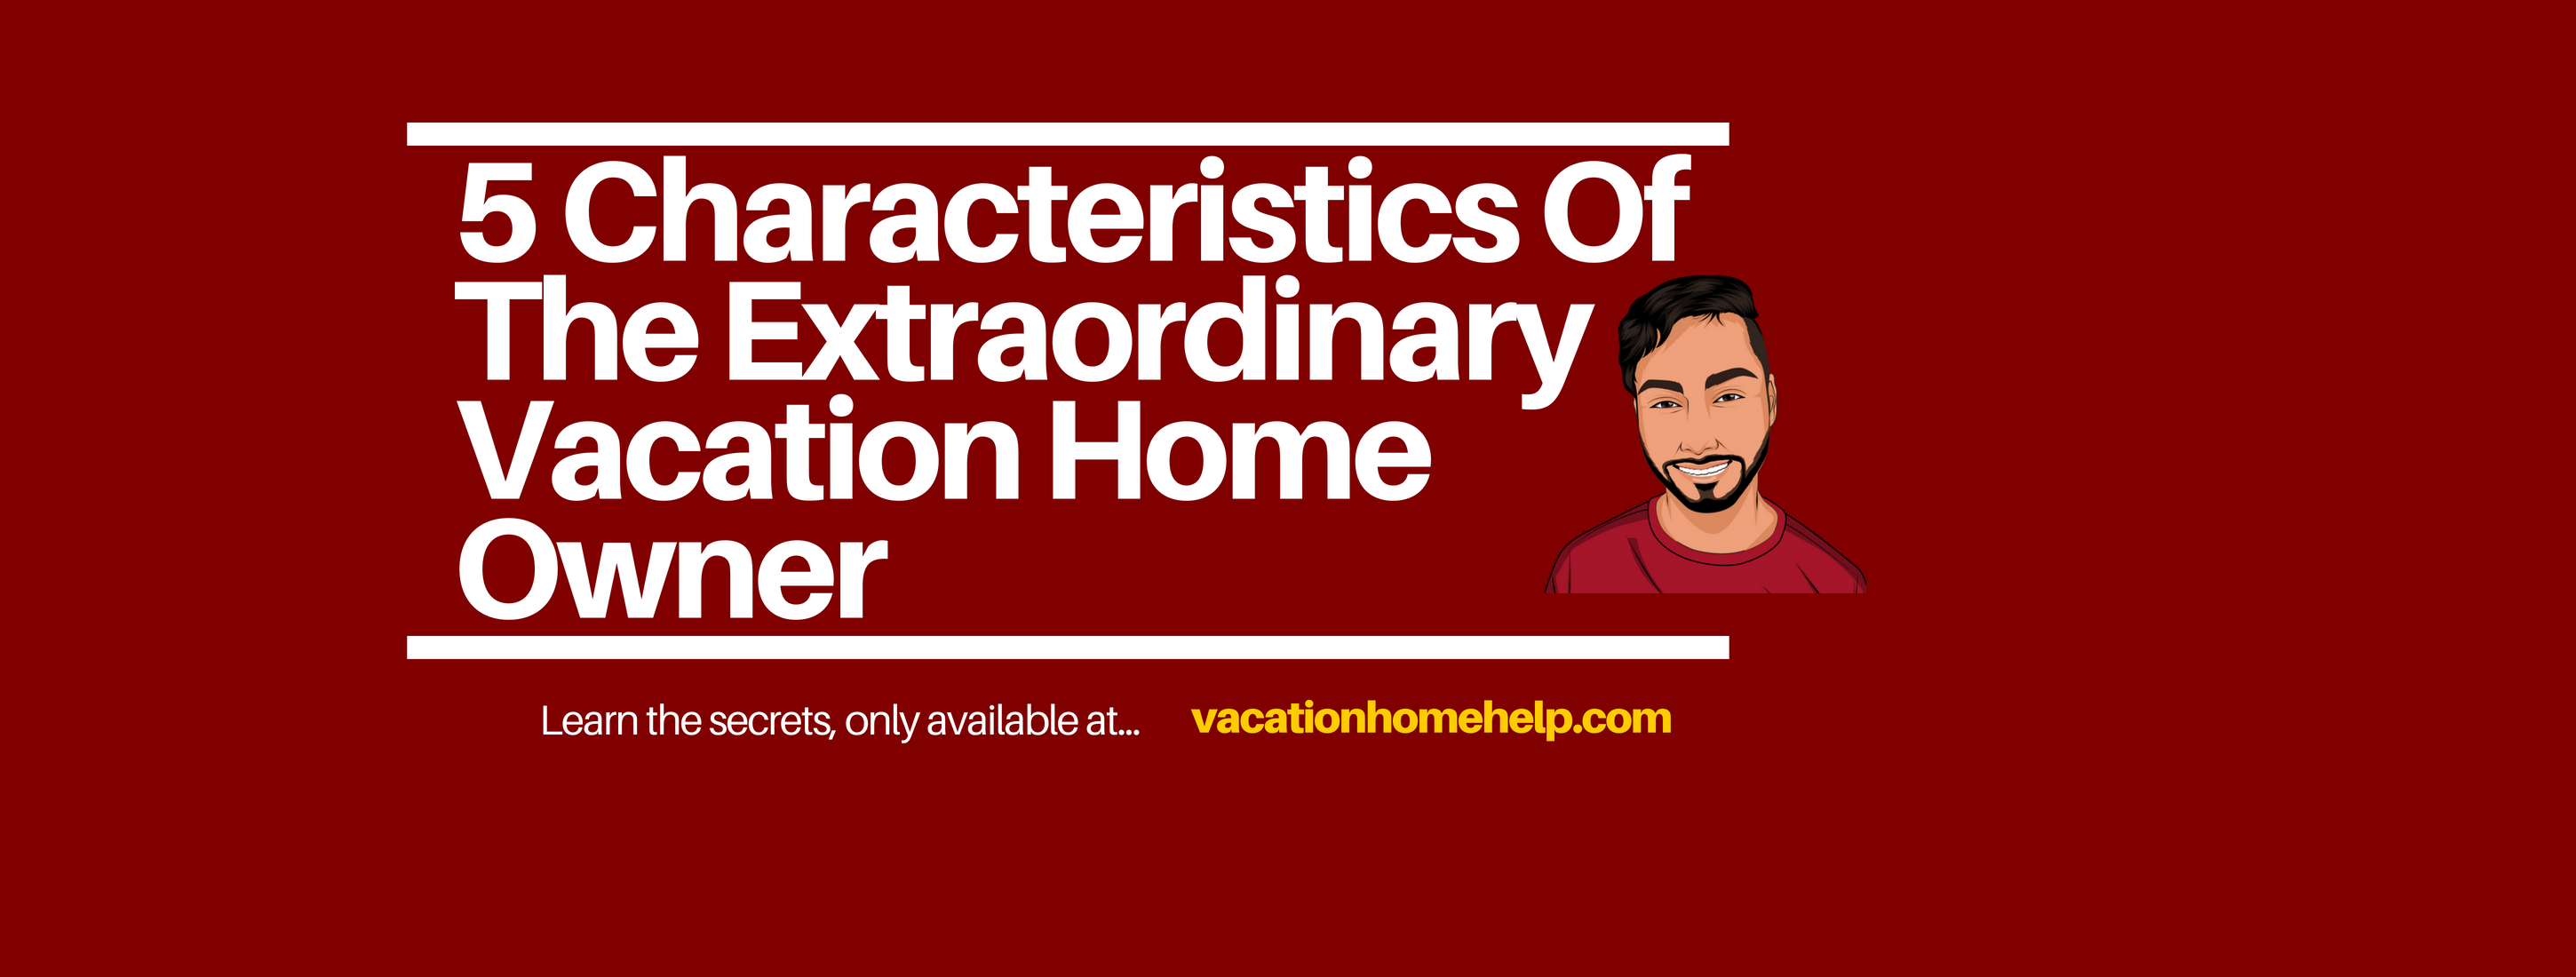 Vacation Home Owner